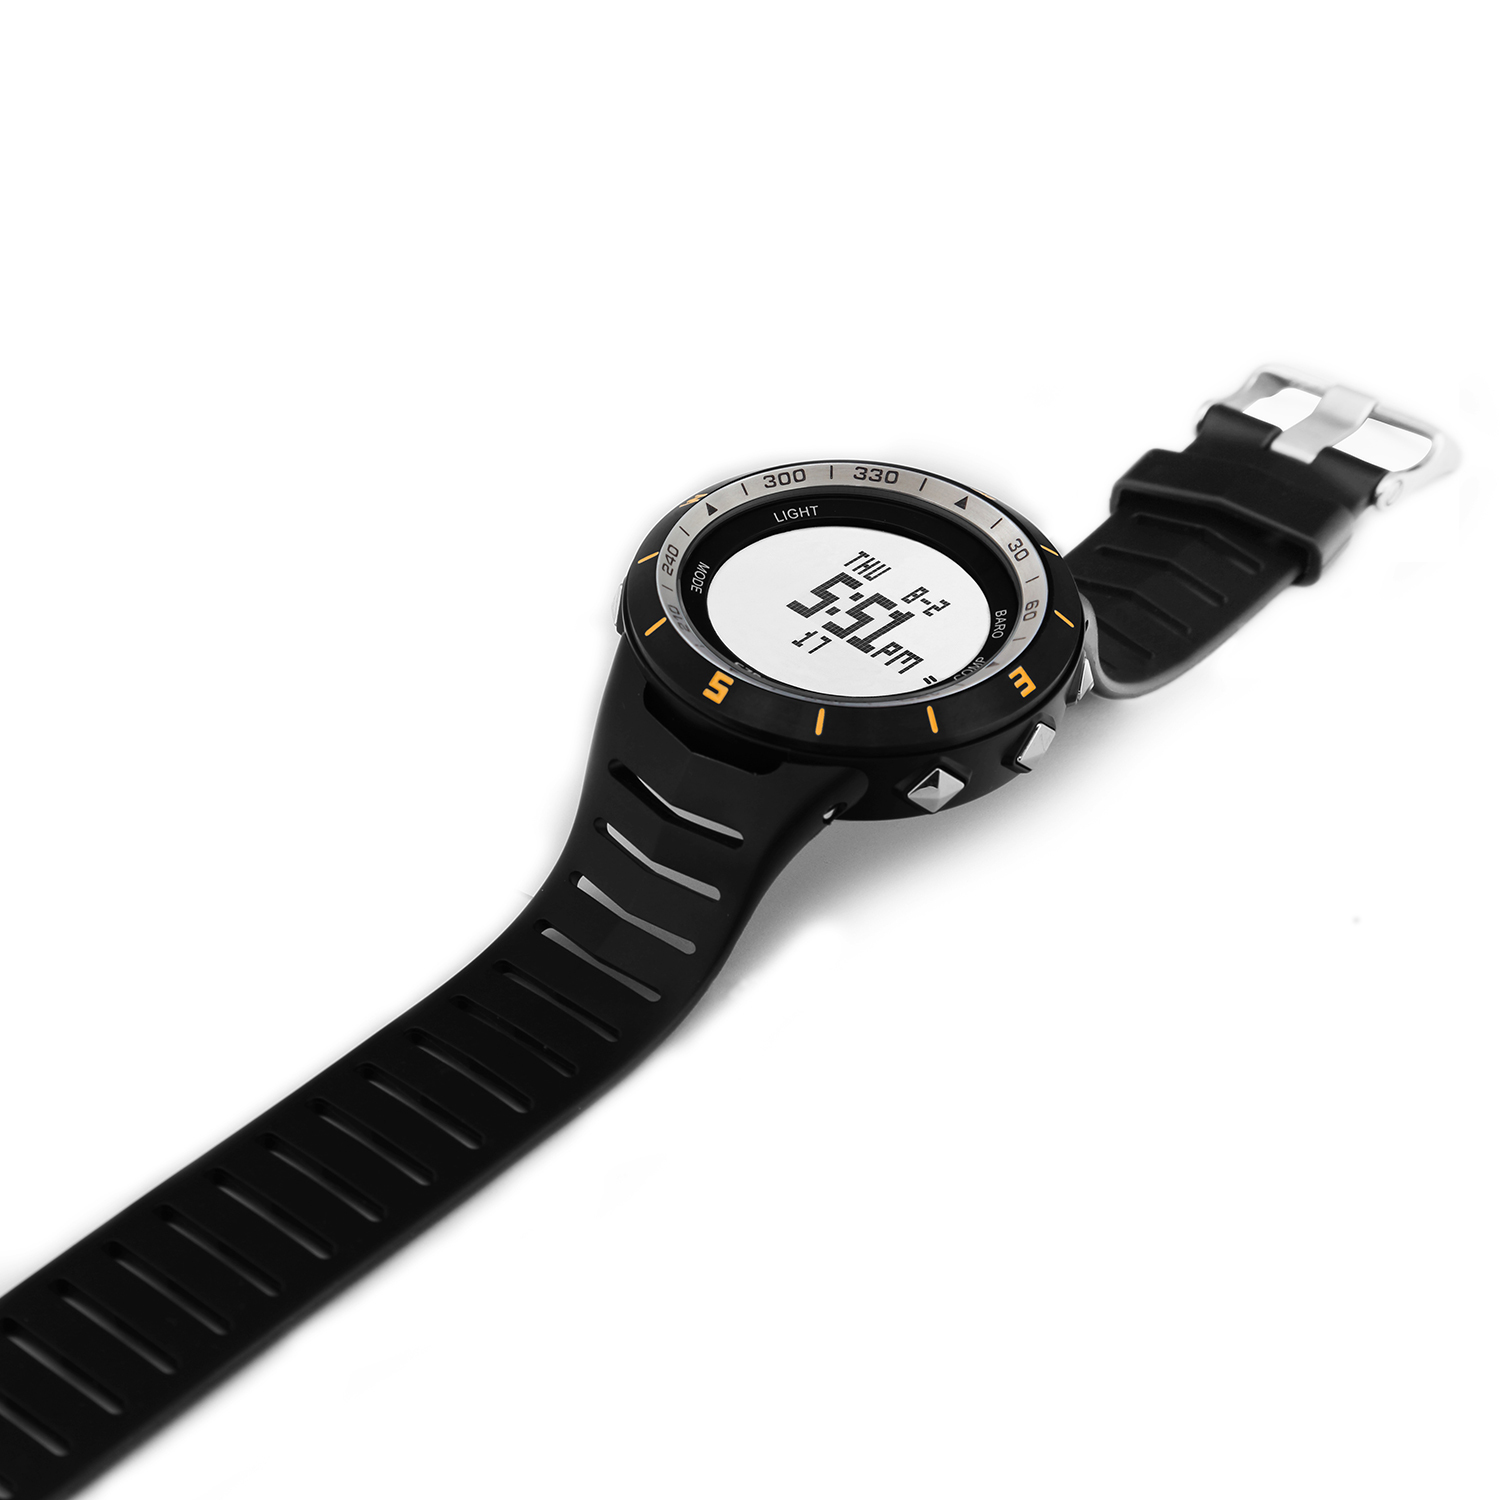 H005A11(Yellow) Multi-function Outdoor Mountaineering Watch